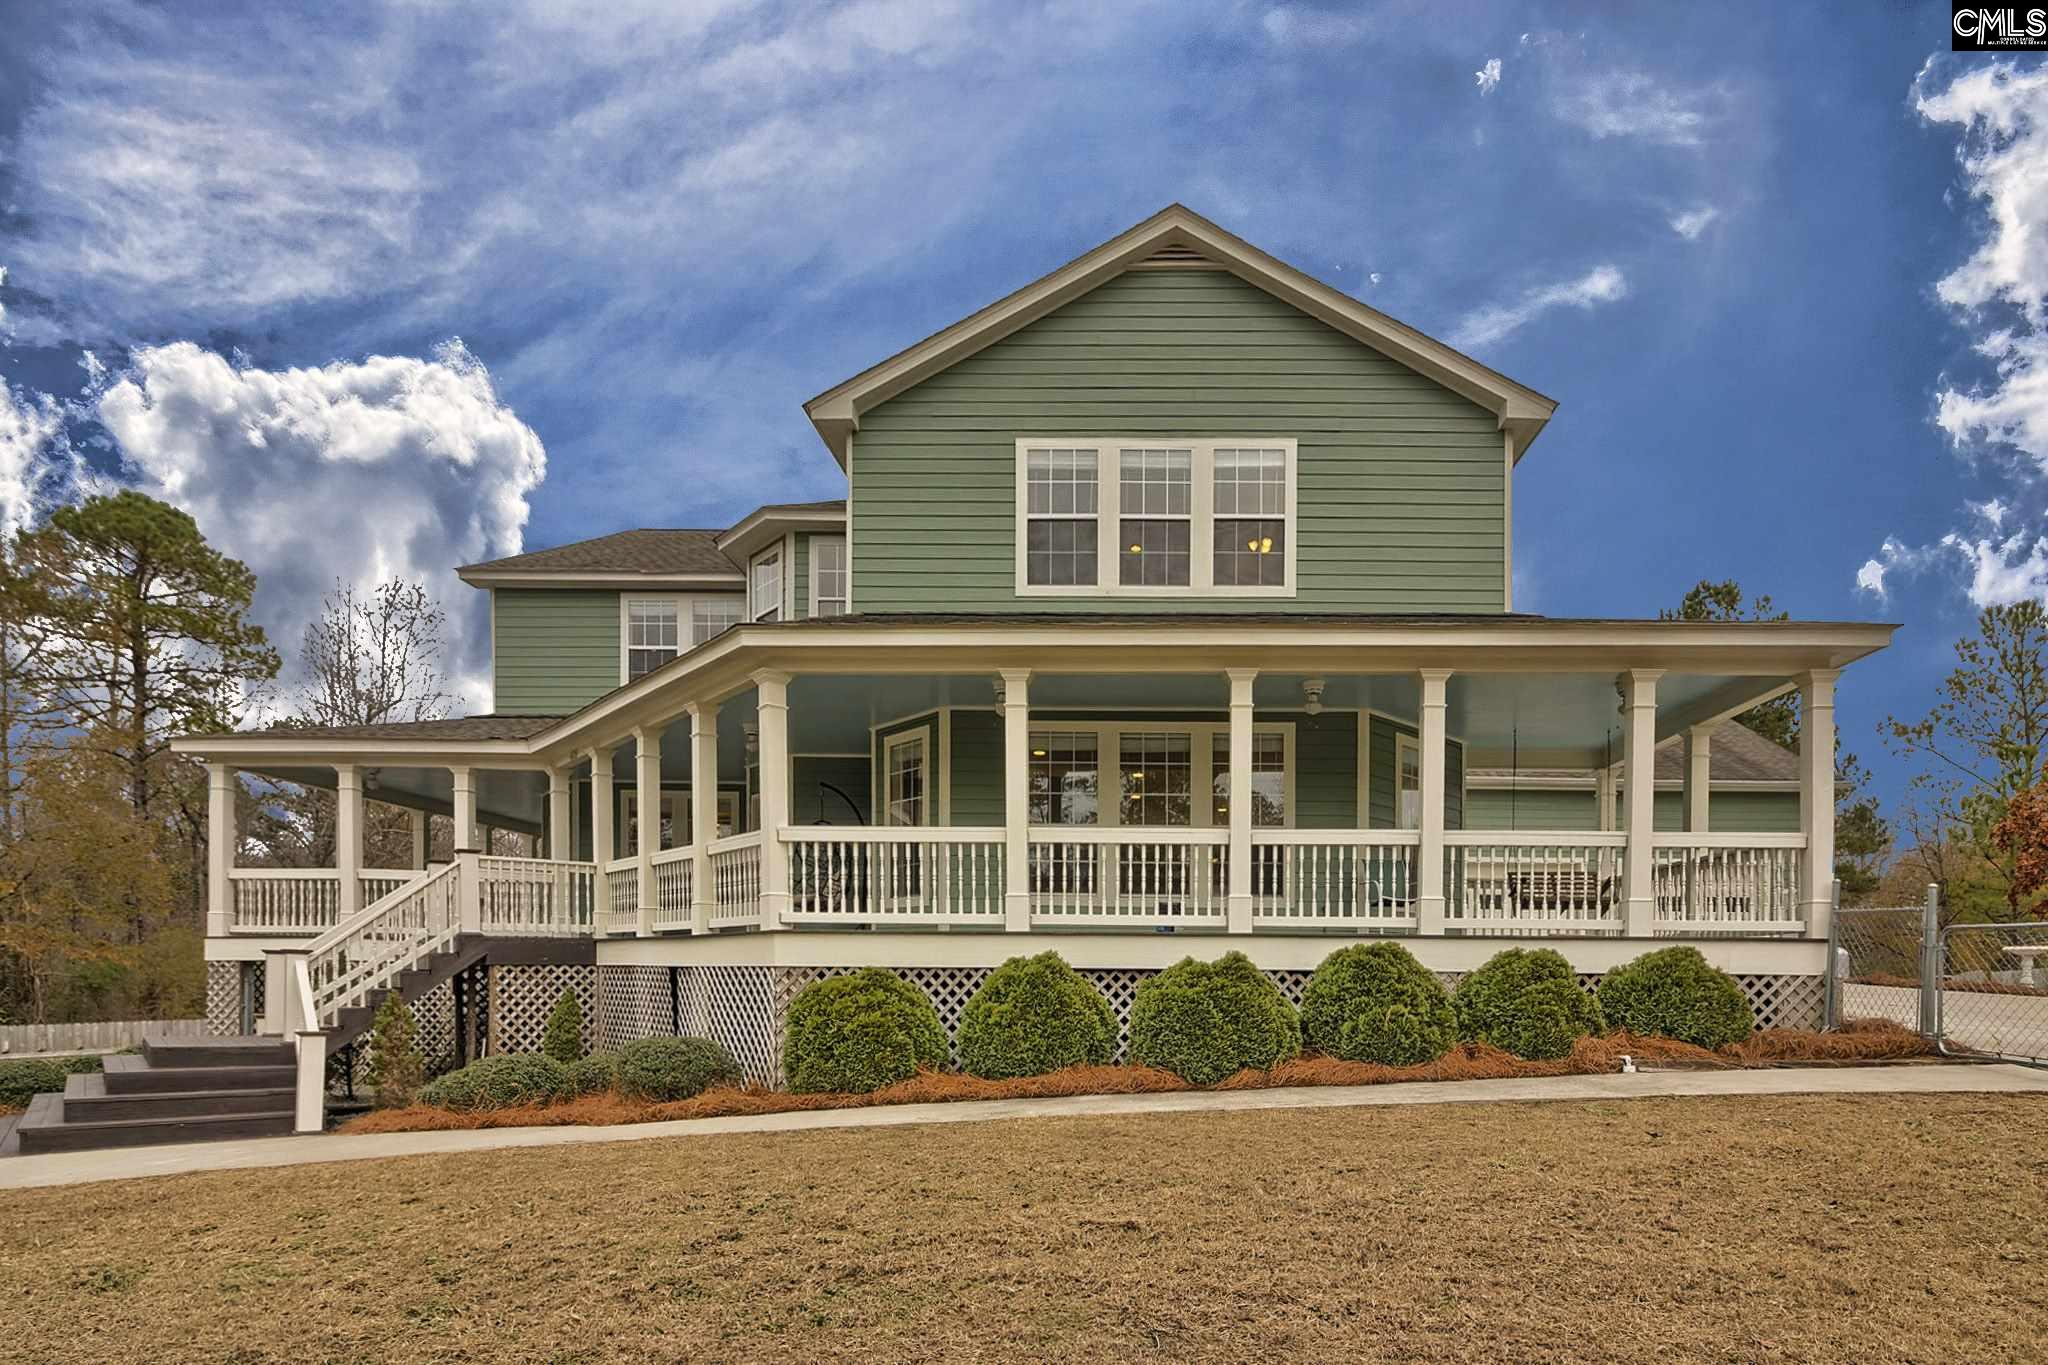 409 Muddy Springs Lexington, SC 29073